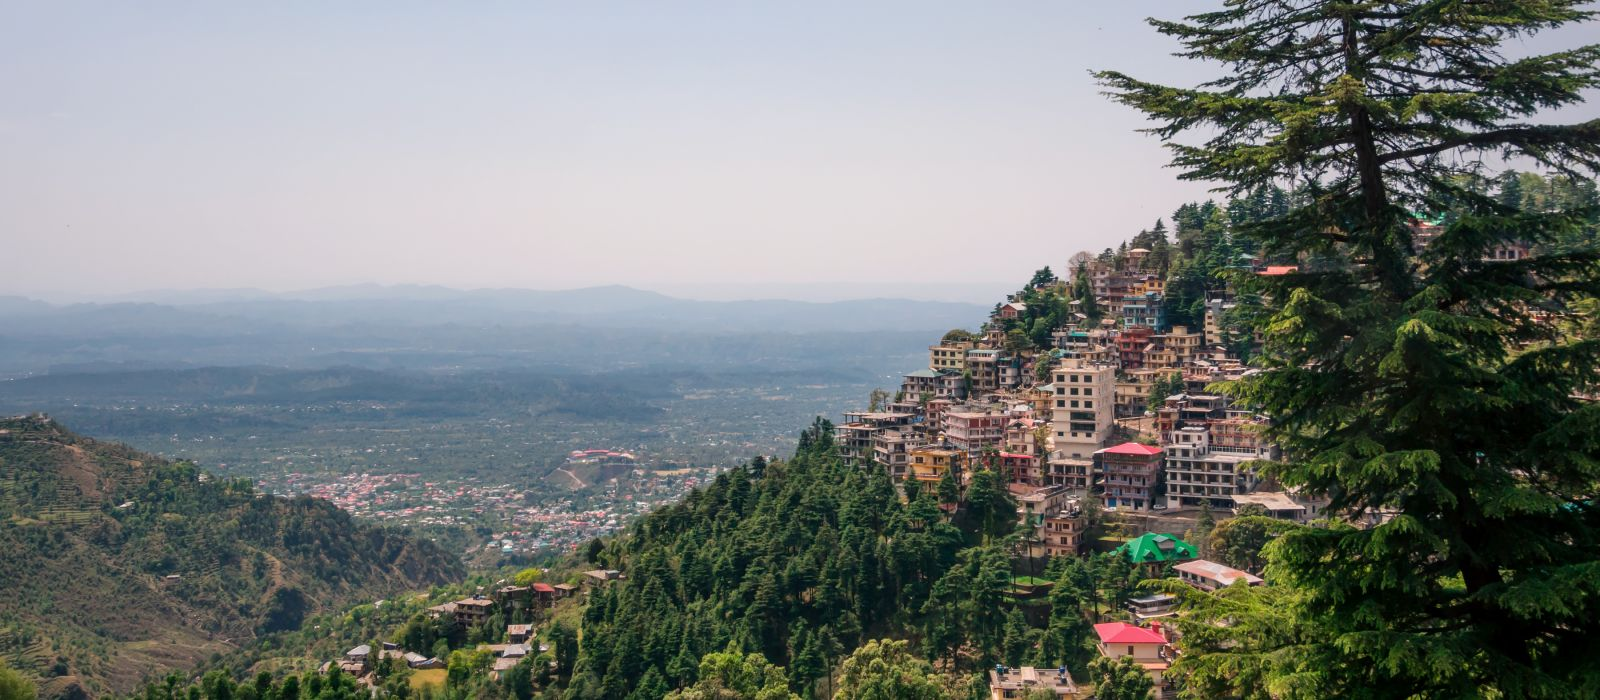 City of McLeodGanj, Dharamsala, India